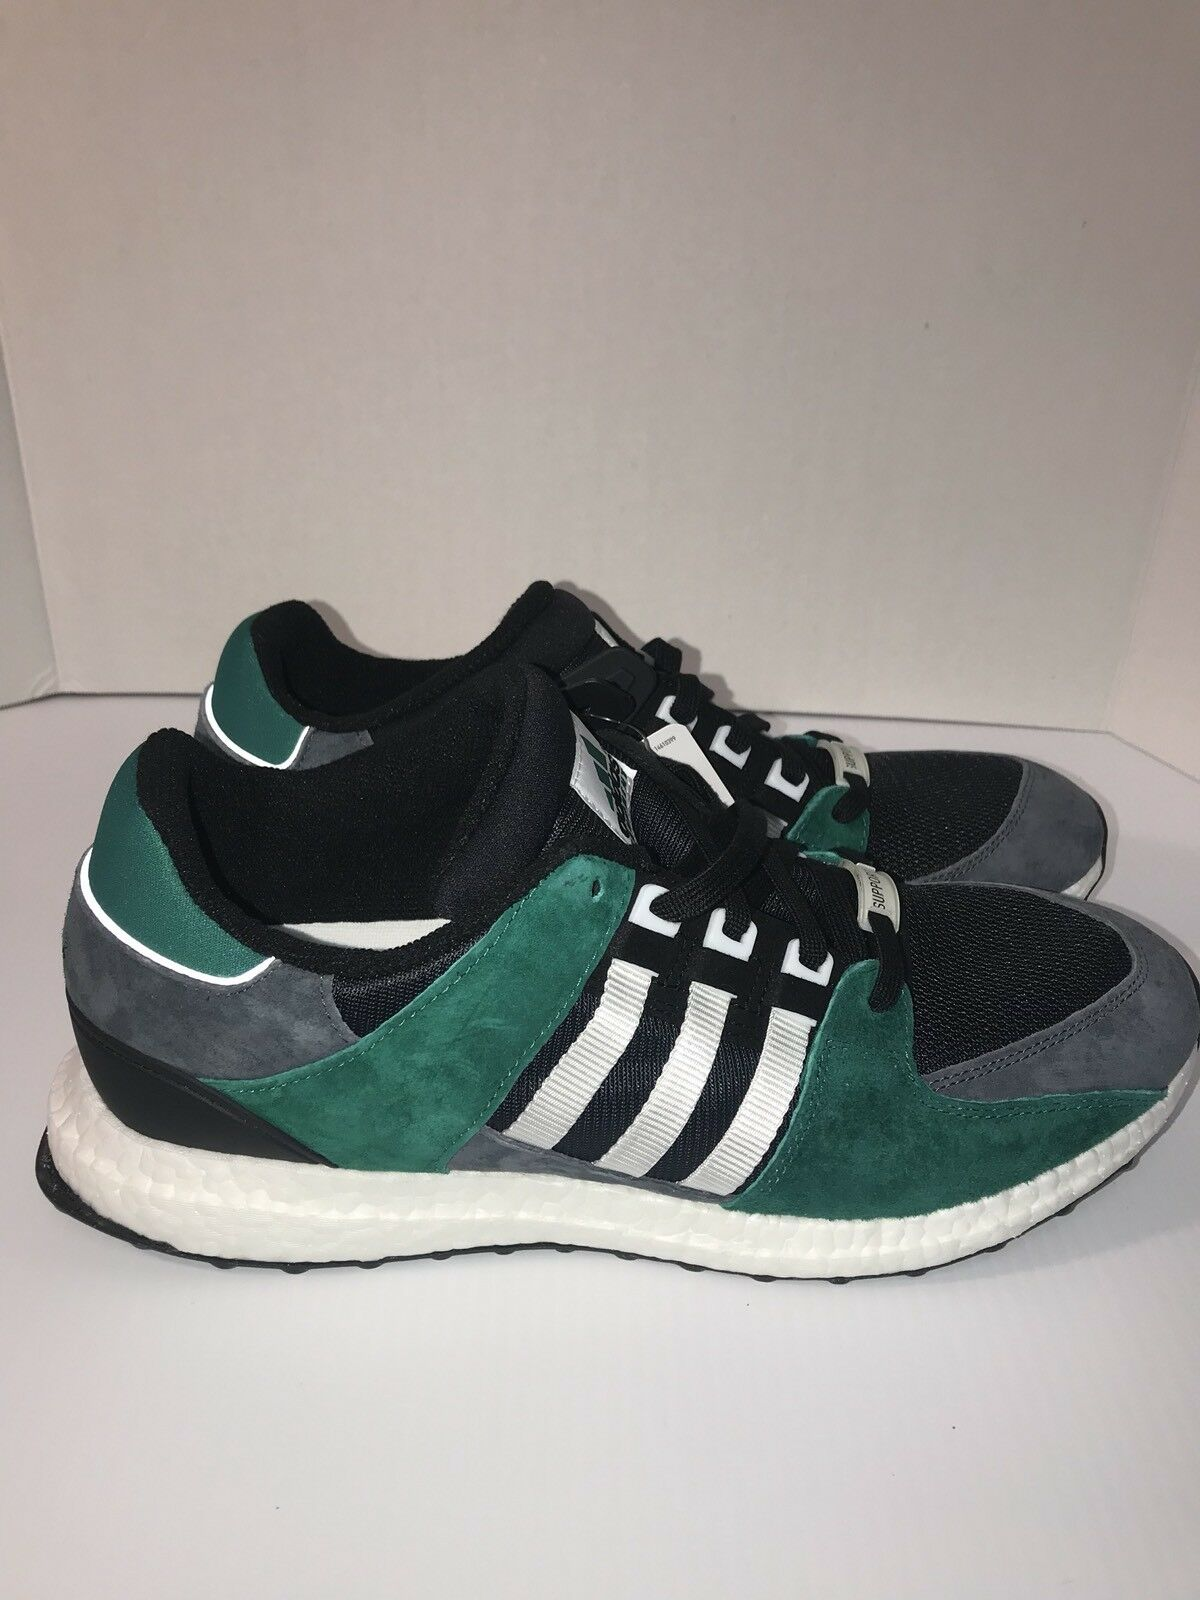 Men's Adidas EQT Support 93 16 Boost Green Black White Grey Size 13 S79923